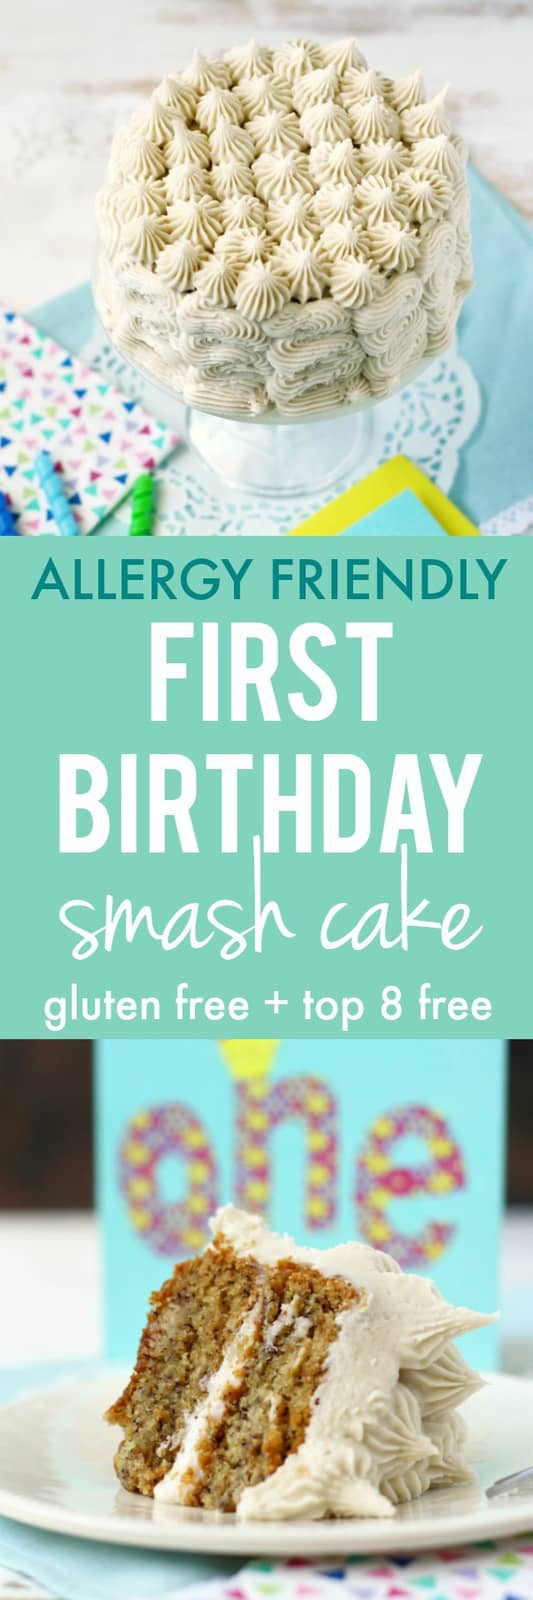 First Birthday Smash Cake Gluten Free Allergy Friendly The